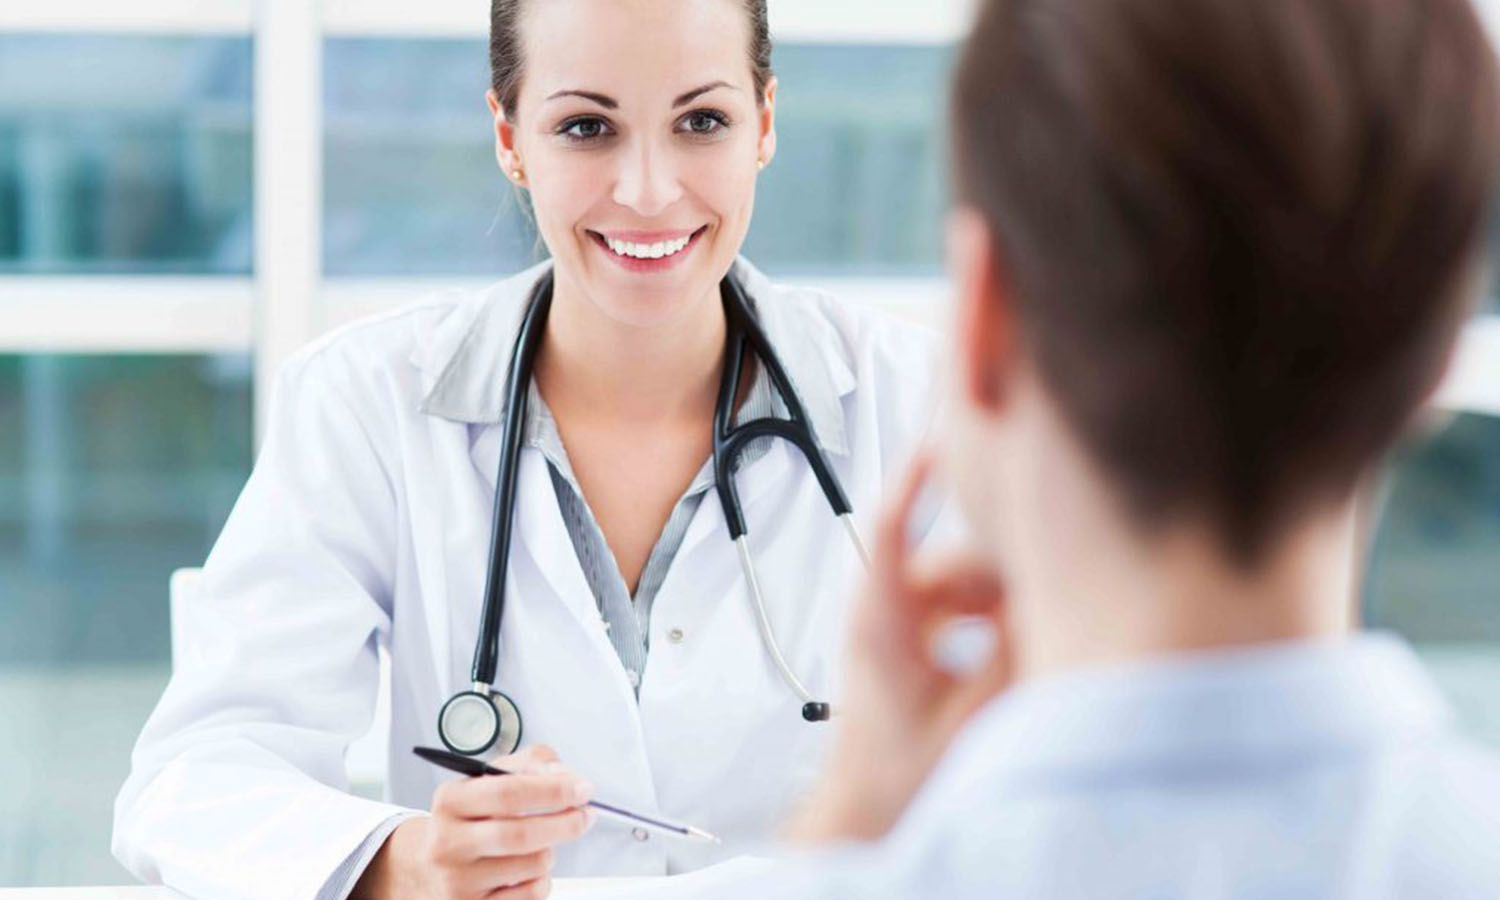 7 Things to Ask Your Doctor During a Clinic Visit